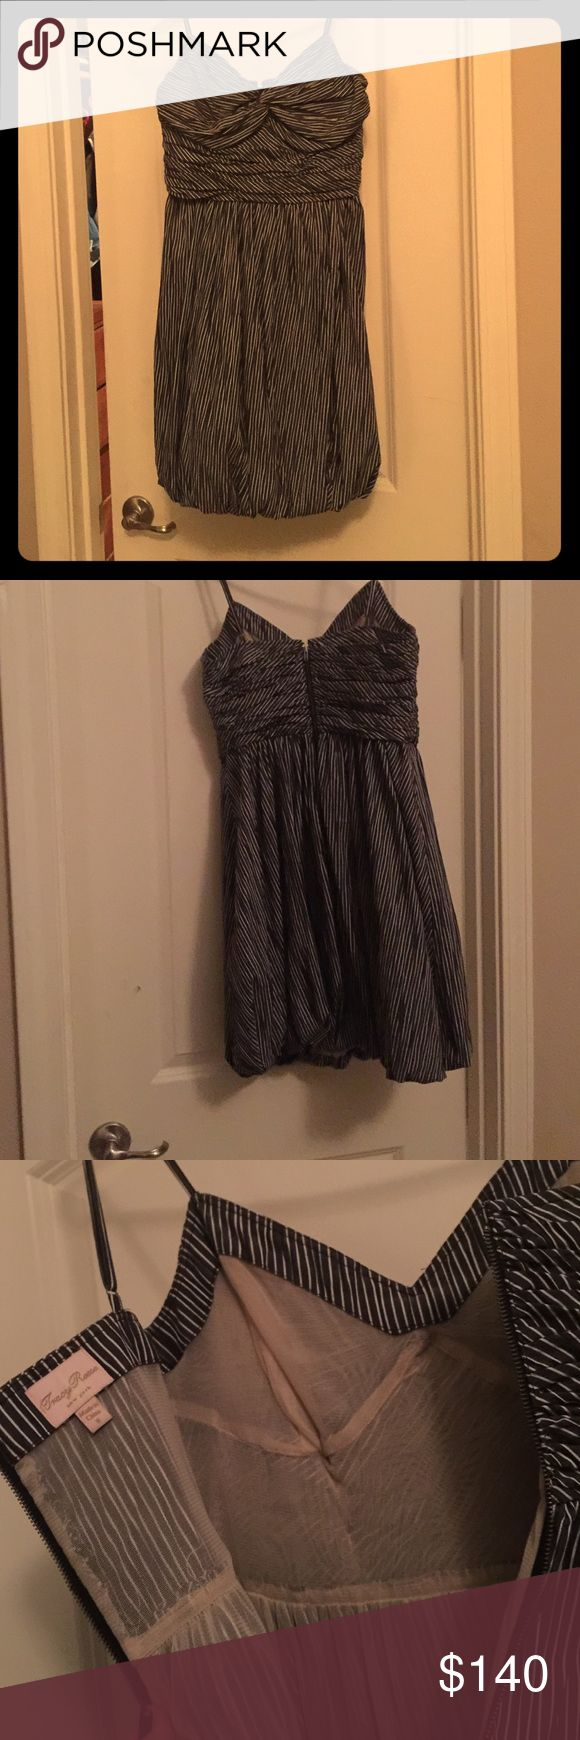 Anthropology dress worn once size 8... Tracey Reese New York . Excellent condition . Pinstripe deep blue and white Tracy Reese Dresses Mini